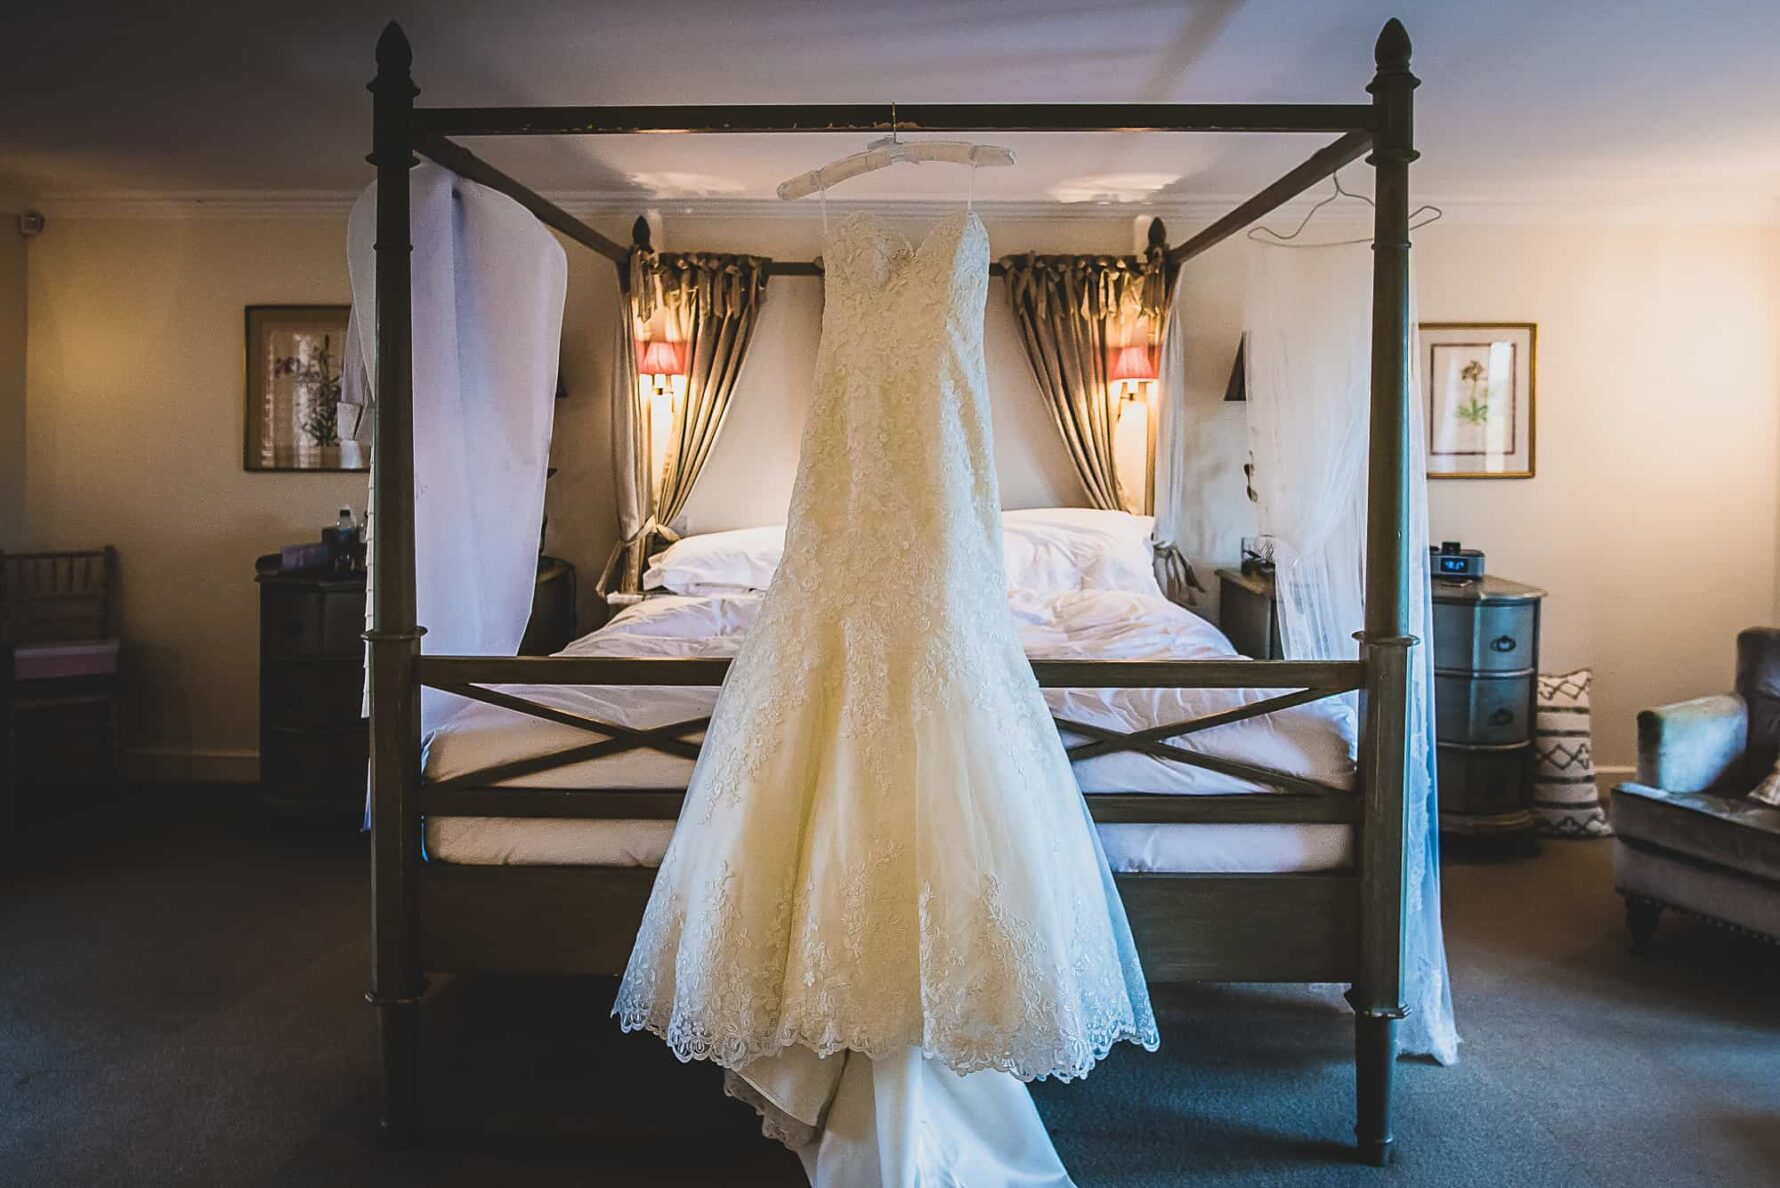 Bride's dress hangs on the bed in the bridal suite of The Old Hall in Ely